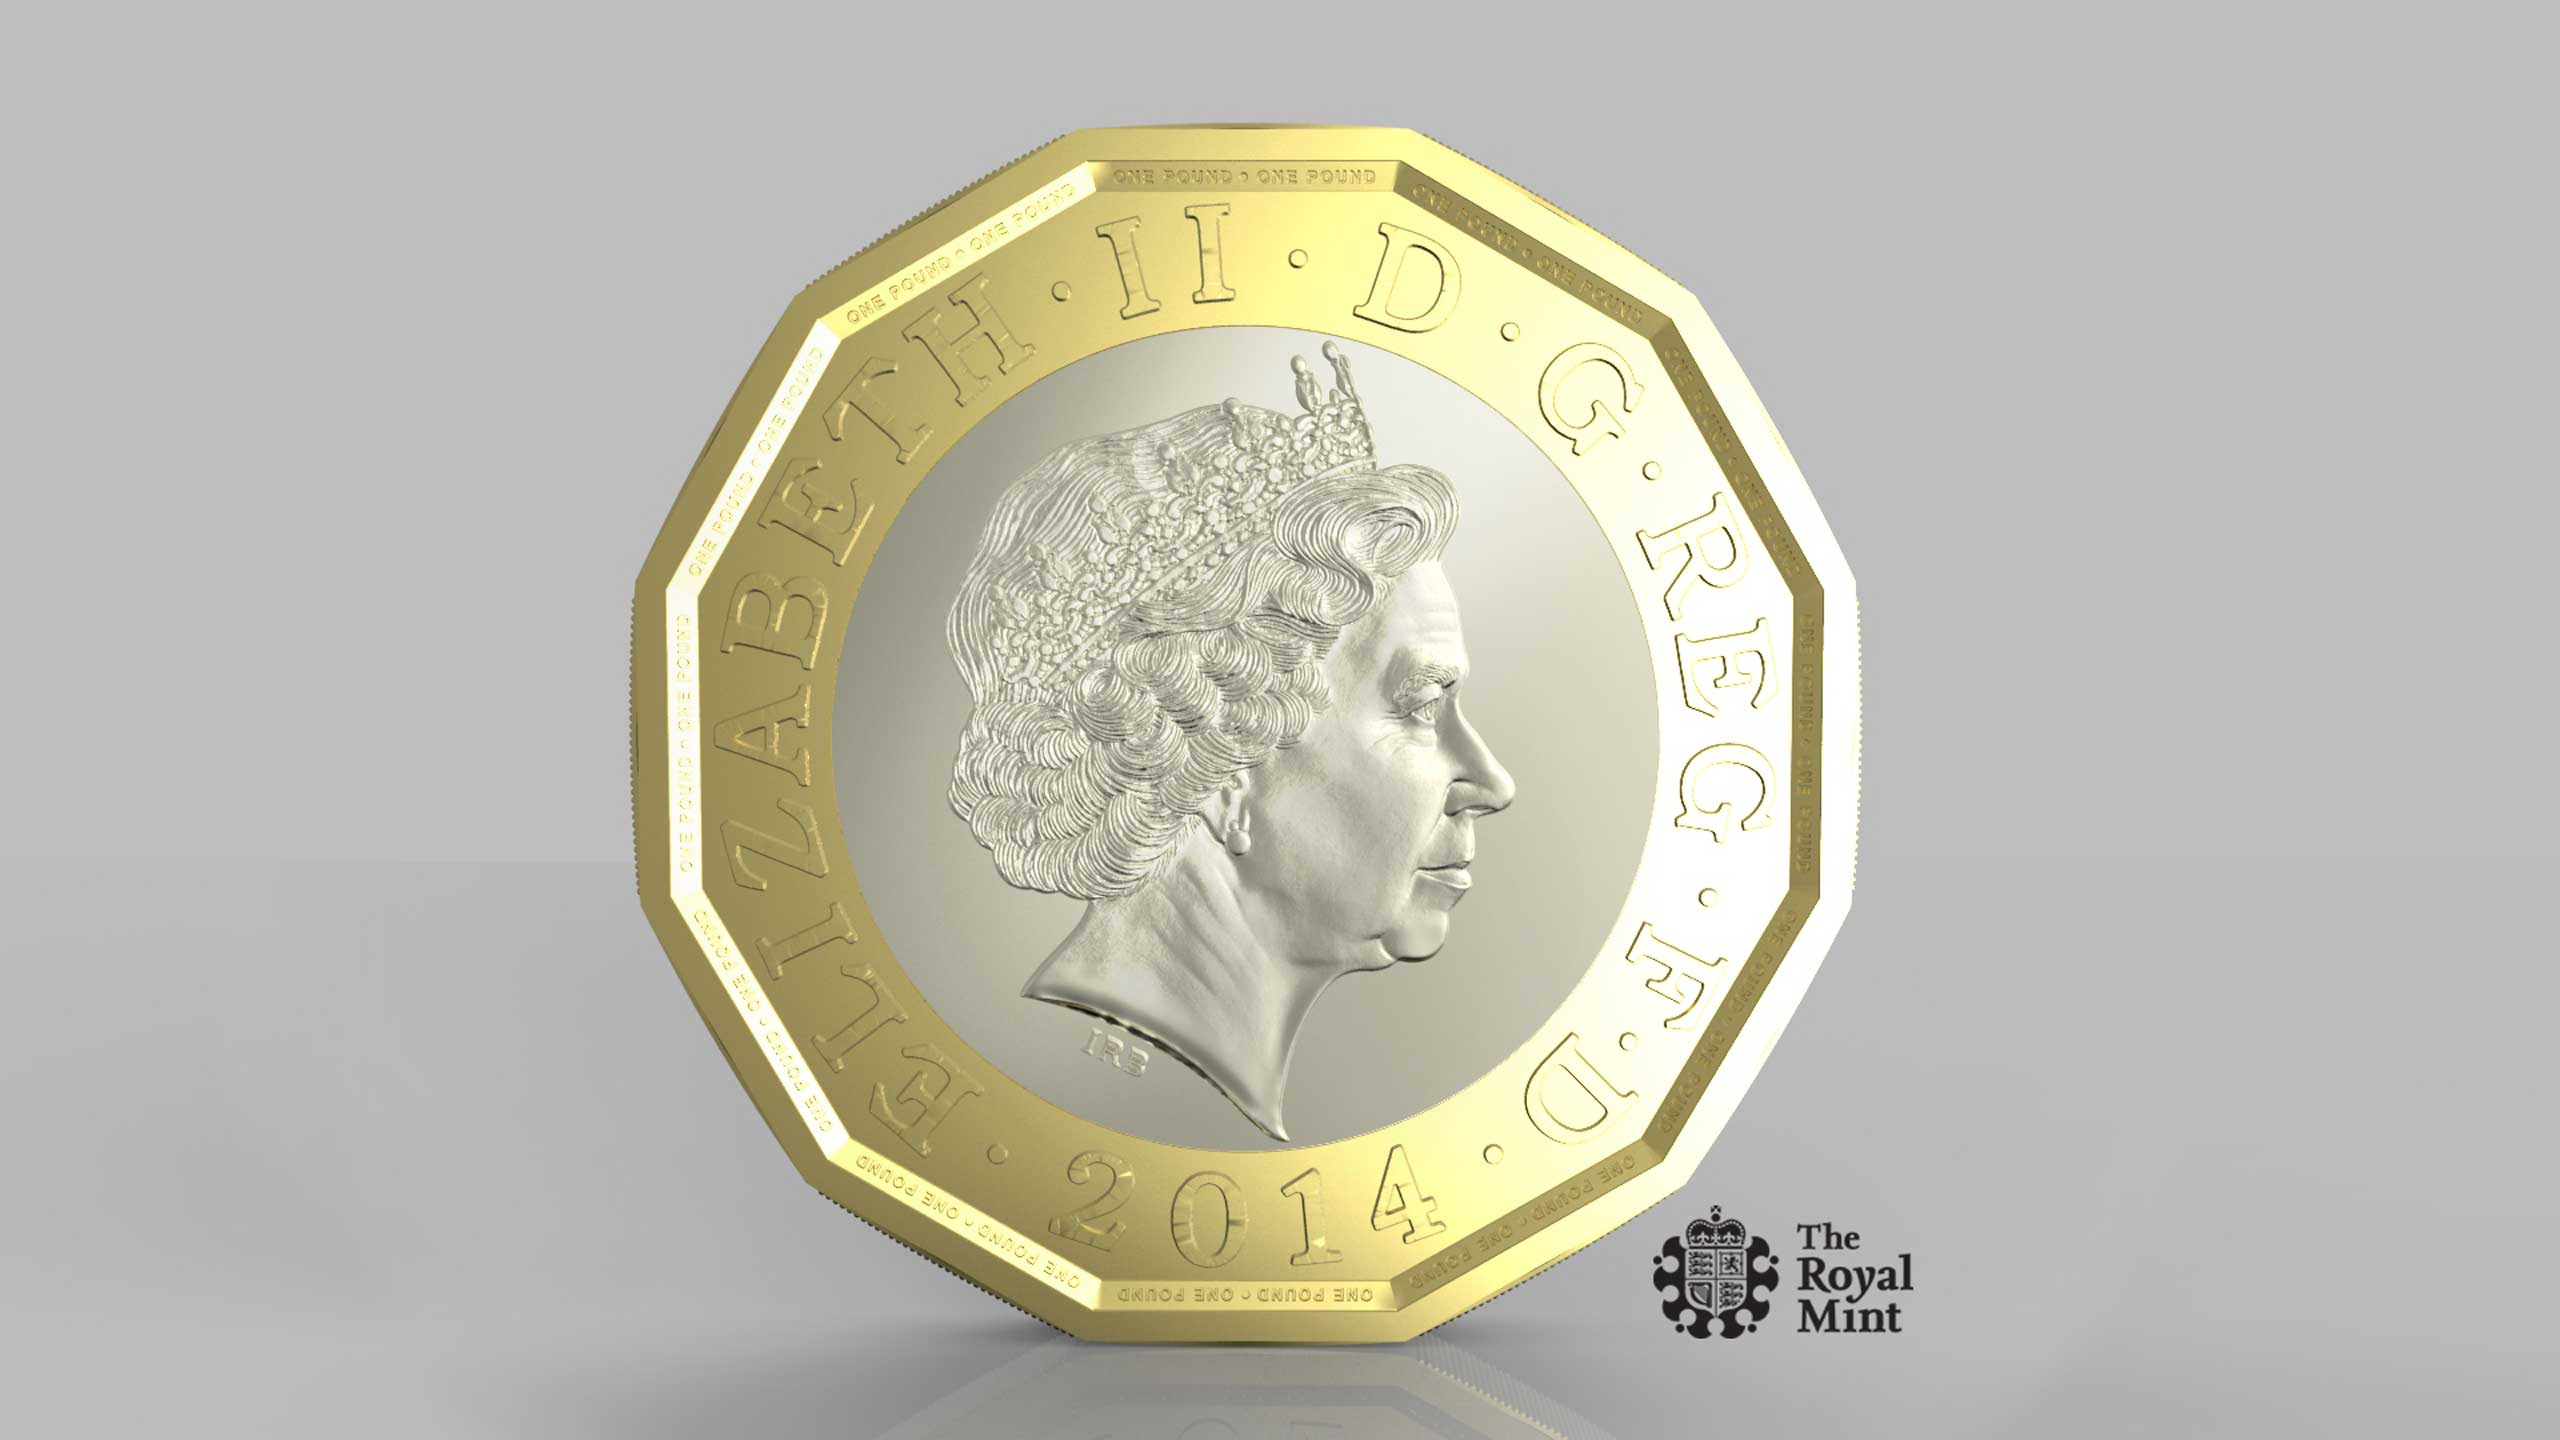 This photo issued by HM Treasury shows the side of a new one pound coin announced by the Government.